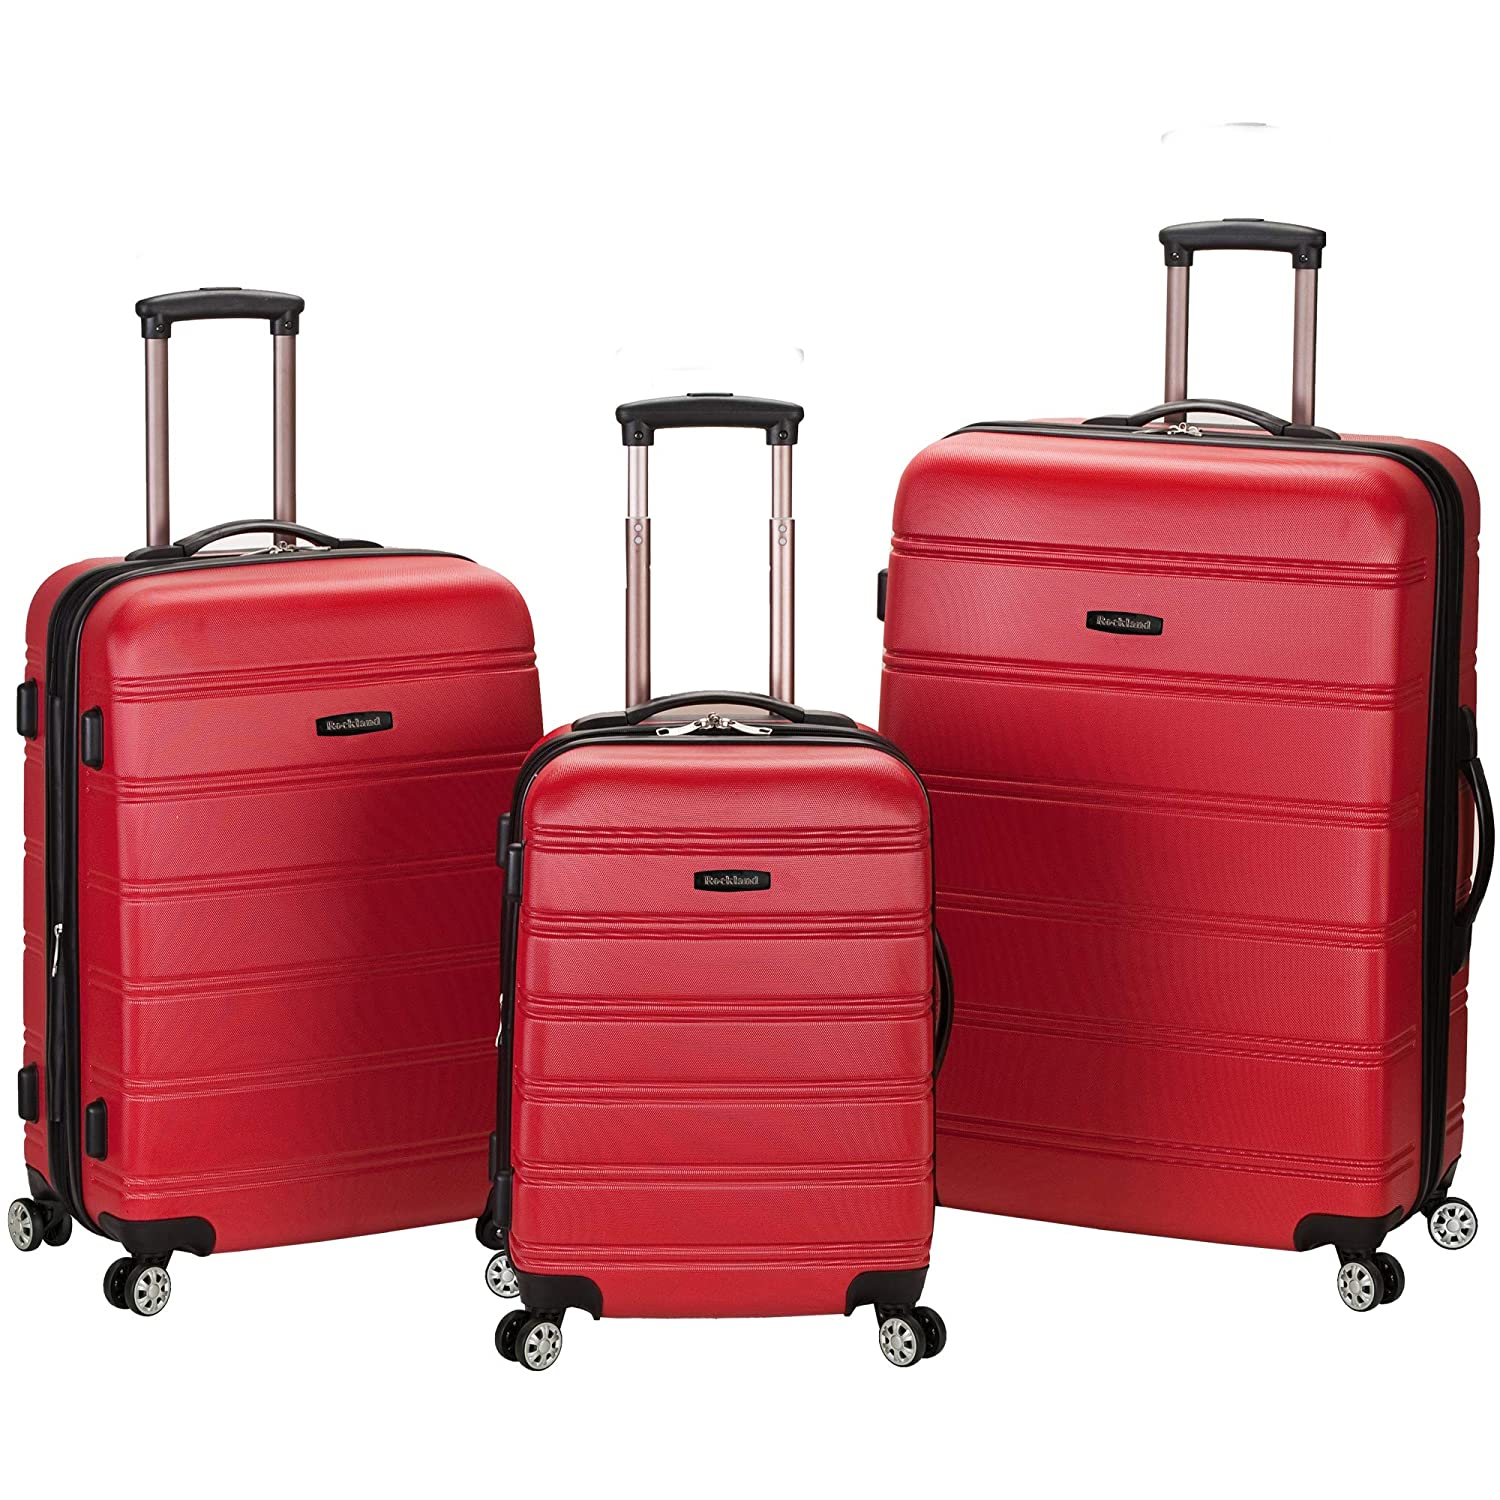 Rockland Luggage Melbourne 3 P...